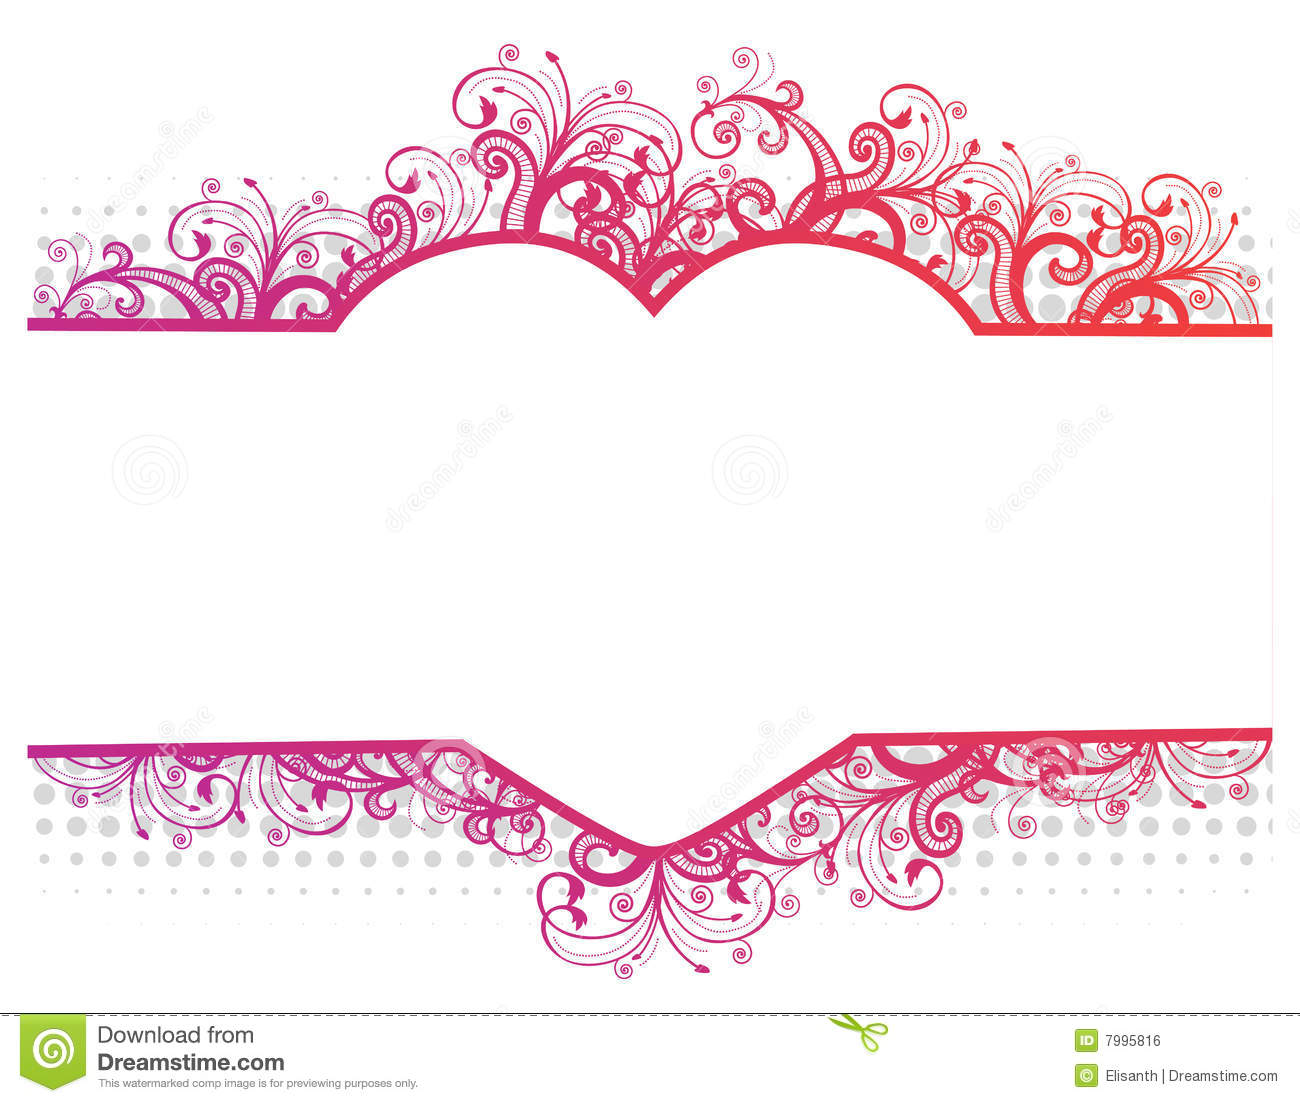 Heart stock illustration royalty free illustrations stock clip art - Royalty Free Stock Photo Border Floral Heart Illustration Pink Vector Art Valentines Decor Pattern Template Clipart